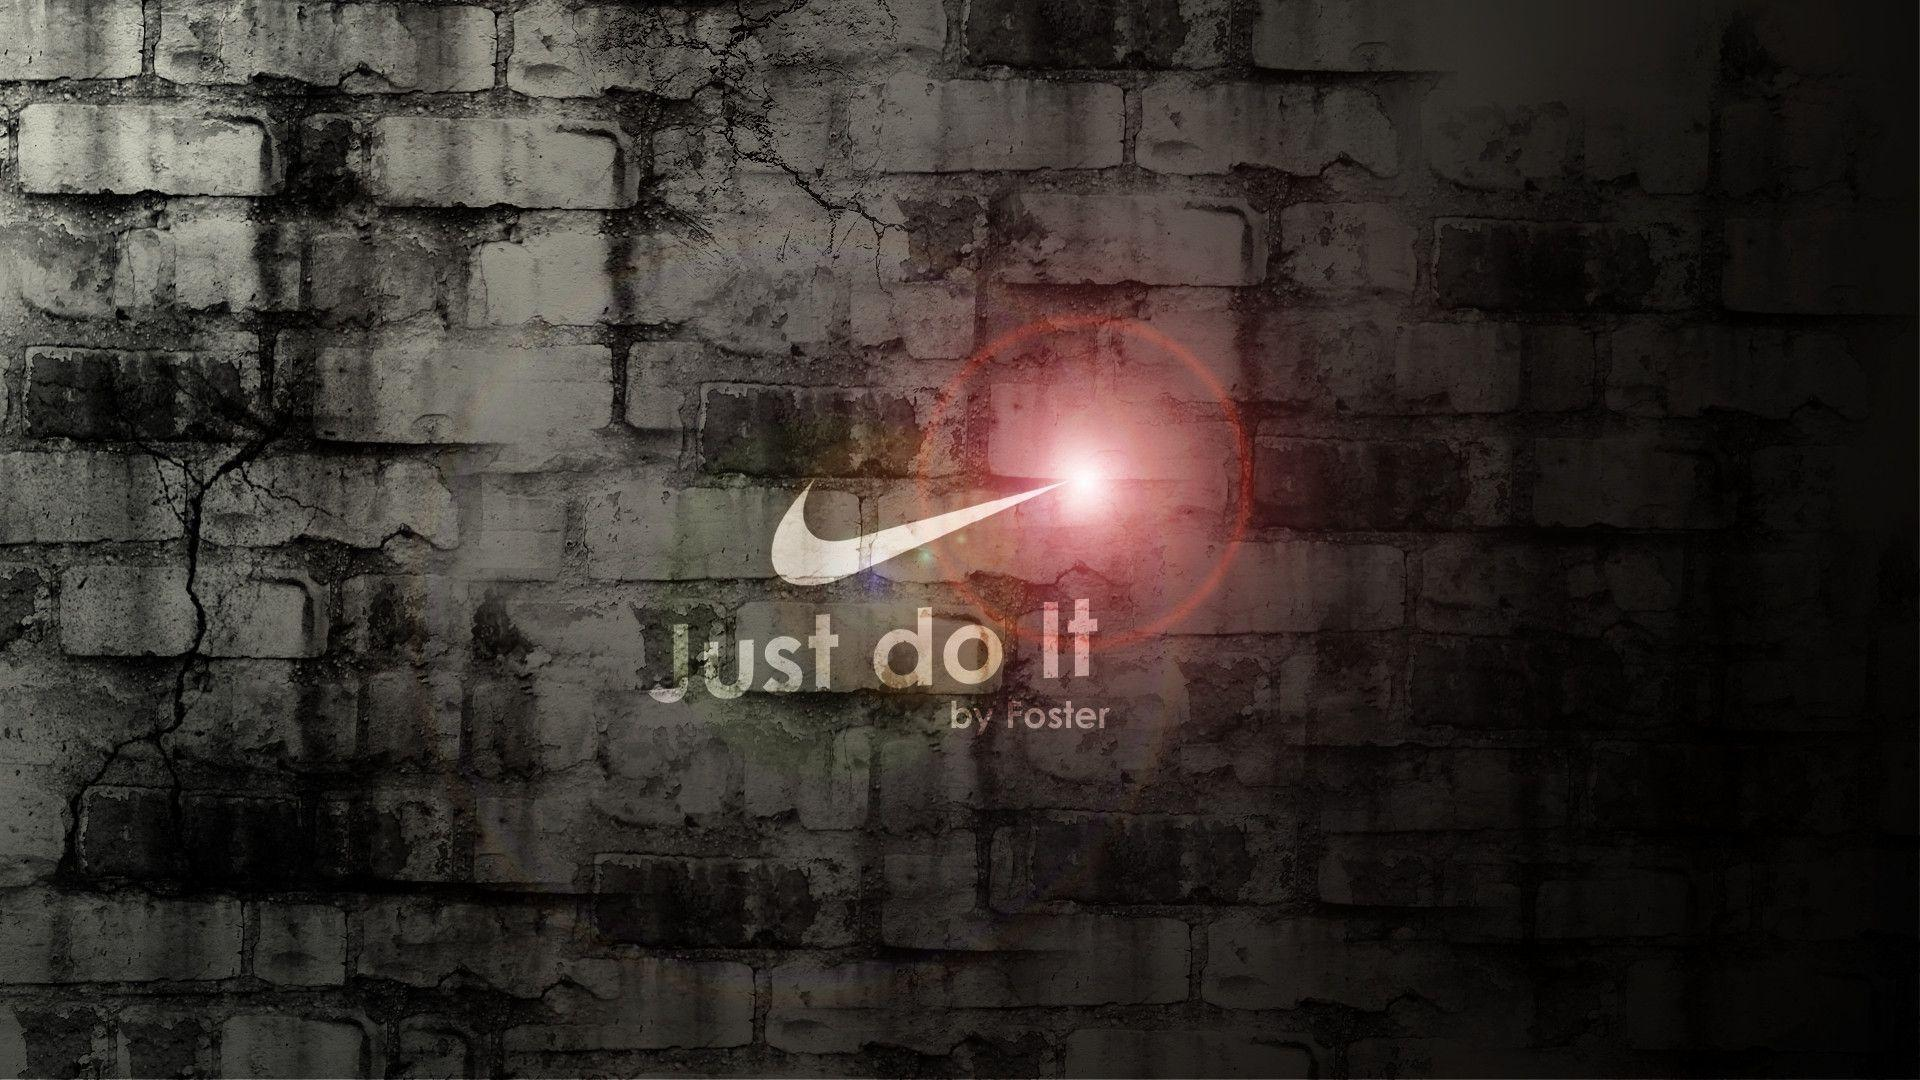 Trends For > Nike Wallpaper Just Do It